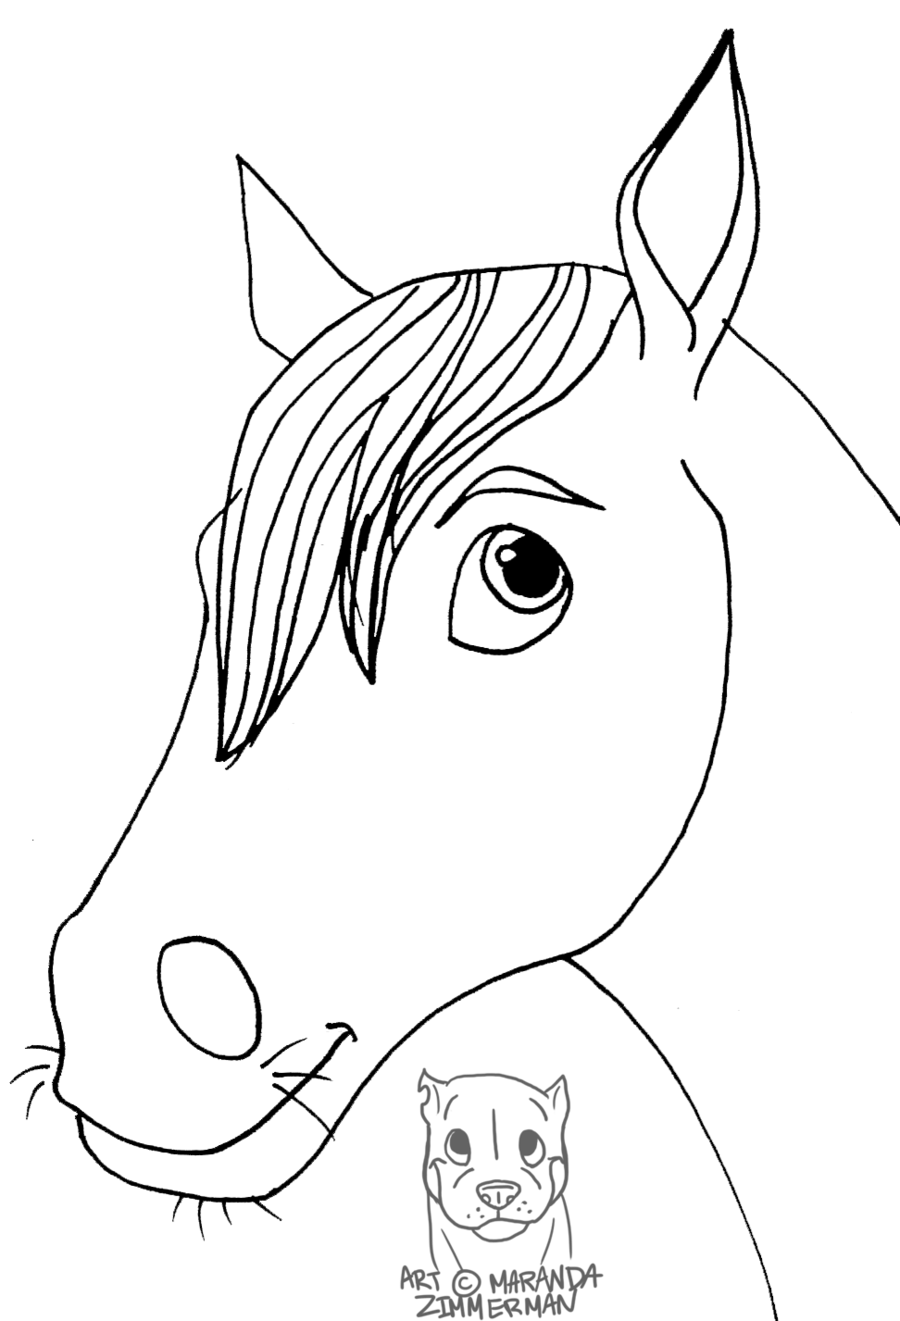 Cartoon Horse Head Drawing at GetDrawings.com | Free for personal ...